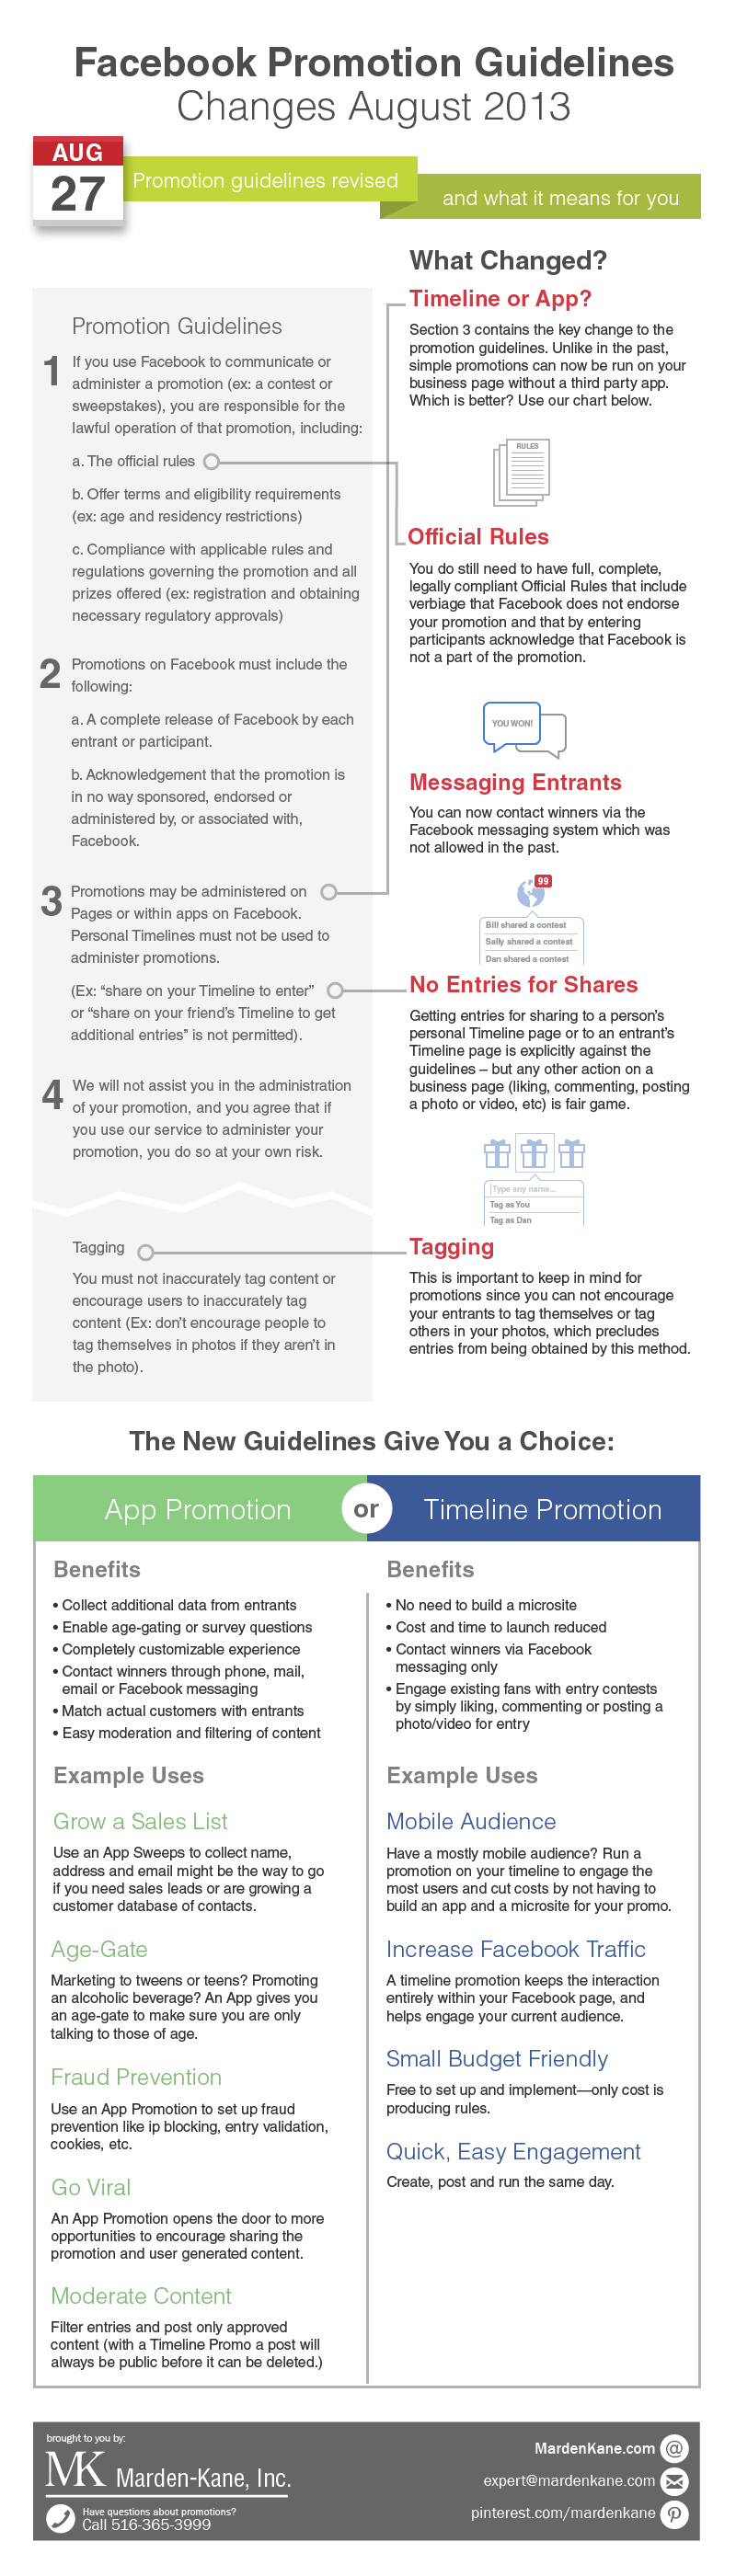 Facebook Promotions Made Simpler with a Few Guidelines Change - Marden-Kane